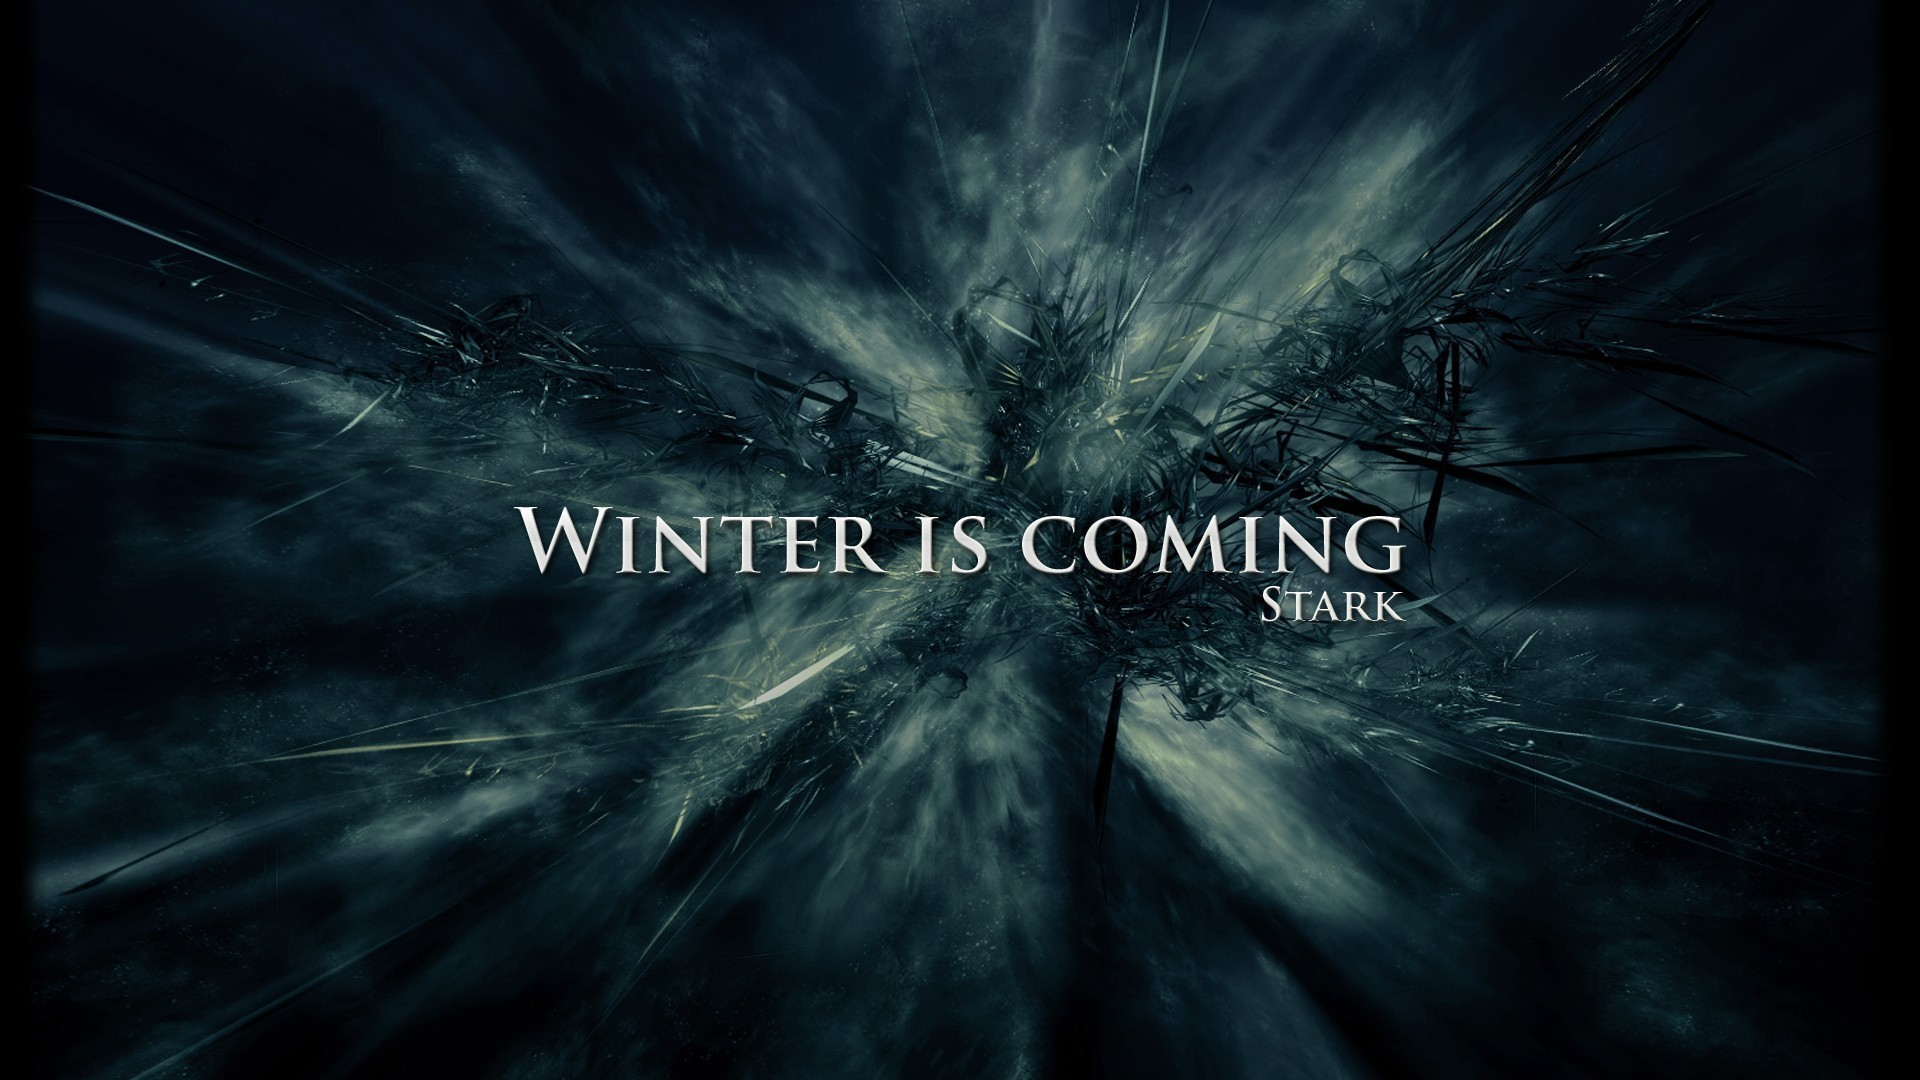 Game Of Thrones, A Song Of Ice And Fire, House Stark, - Game Of Thrones Poster Winter Is Coming - HD Wallpaper